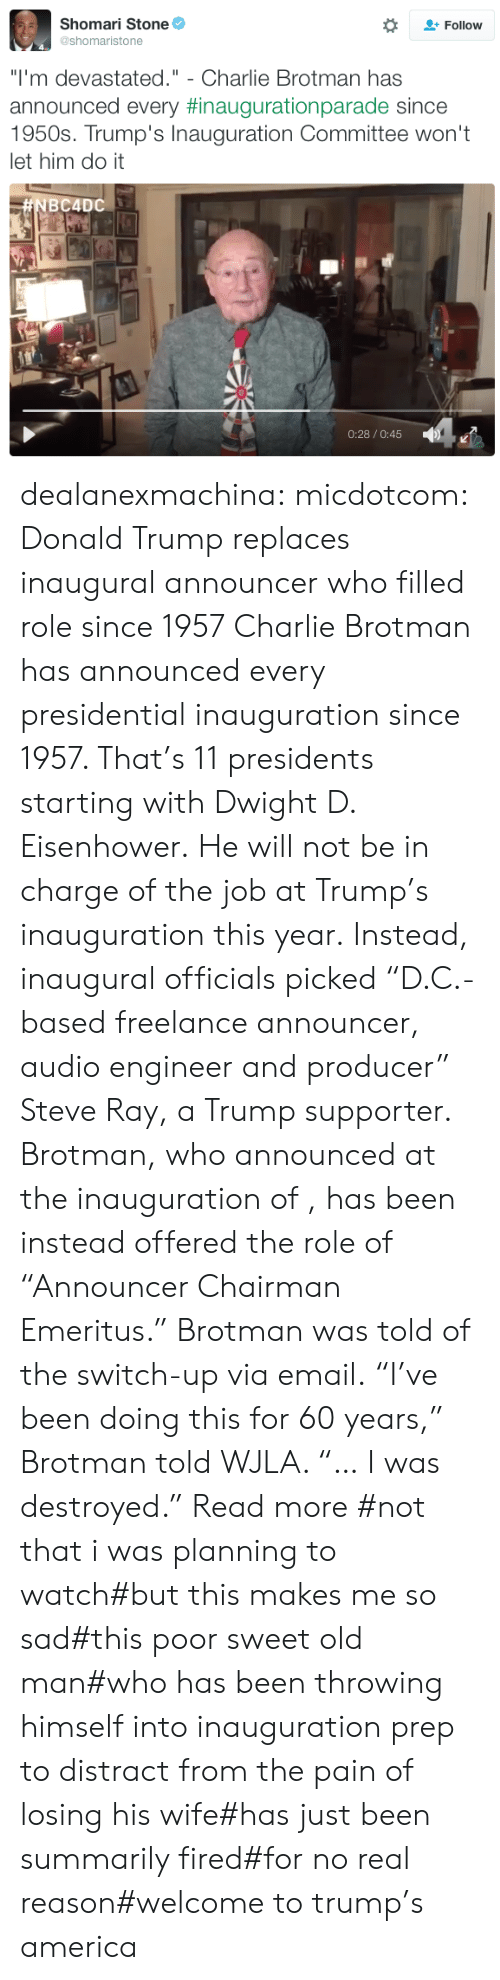 "dwight d eisenhower: Shomari Stone  Follow  @shomaristone  ""I'm devastated."" - Charlie Brotman has  announced every #inaugurationparade since  1950s. Trump's Inauguration Committee won't  let him do it  #NBC4DC  0:28/O:45 dealanexmachina: micdotcom:  Donald Trump replaces inaugural announcer who filled role since 1957 Charlie Brotman has announced every presidential inauguration since 1957. That's 11 presidents starting with Dwight D. Eisenhower. He will not be in charge of the job at Trump's inauguration this year. Instead, inaugural officials picked ""D.C.-based freelance announcer, audio engineer and producer"" Steve Ray, a Trump supporter.  Brotman, who announced at the inauguration of , has been instead offered the role of ""Announcer Chairman Emeritus."" Brotman was told of the switch-up via email. ""I've been doing this for 60 years,"" Brotman told WJLA. ""… I was destroyed."" Read more    #not that i was planning to watch#but this makes me so sad#this poor sweet old man#who has been throwing himself into inauguration prep to distract from the pain of losing his wife#has just been summarily fired#for no real reason#welcome to trump's america"